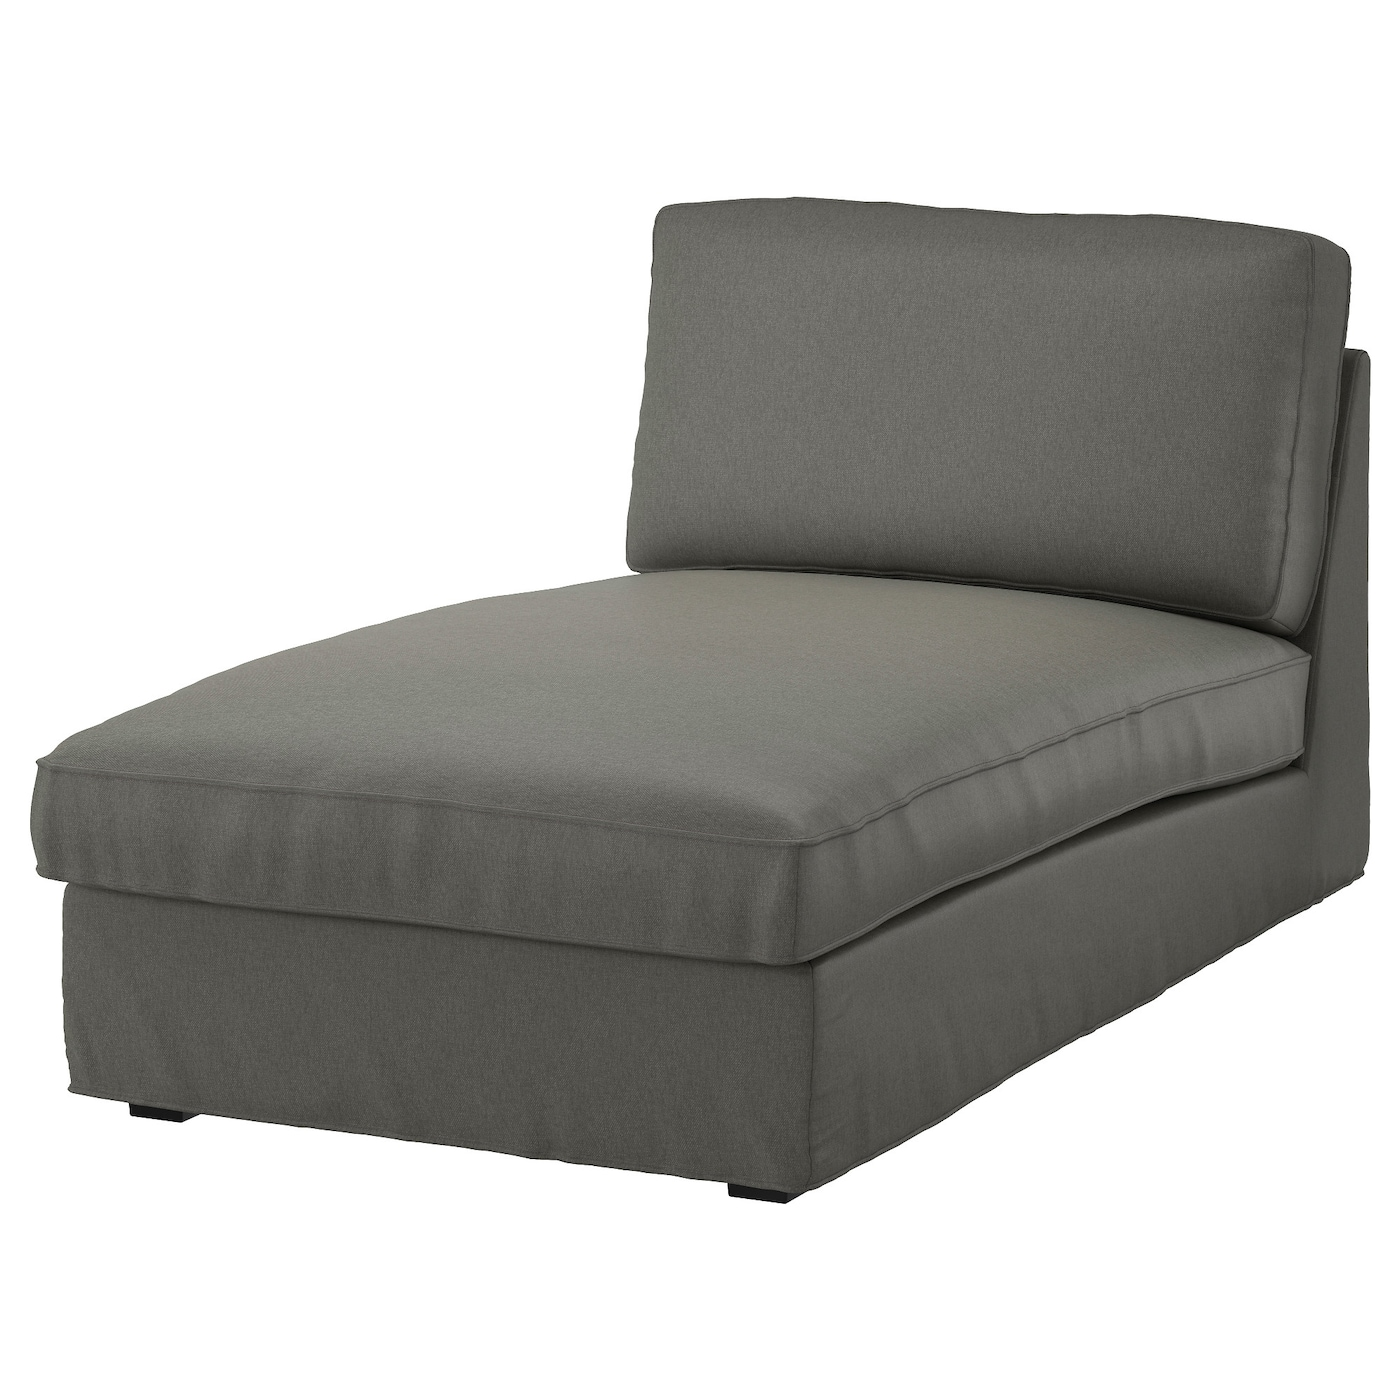 Kivik cover for chaise longue borred grey green ikea for Chaise longue ikea